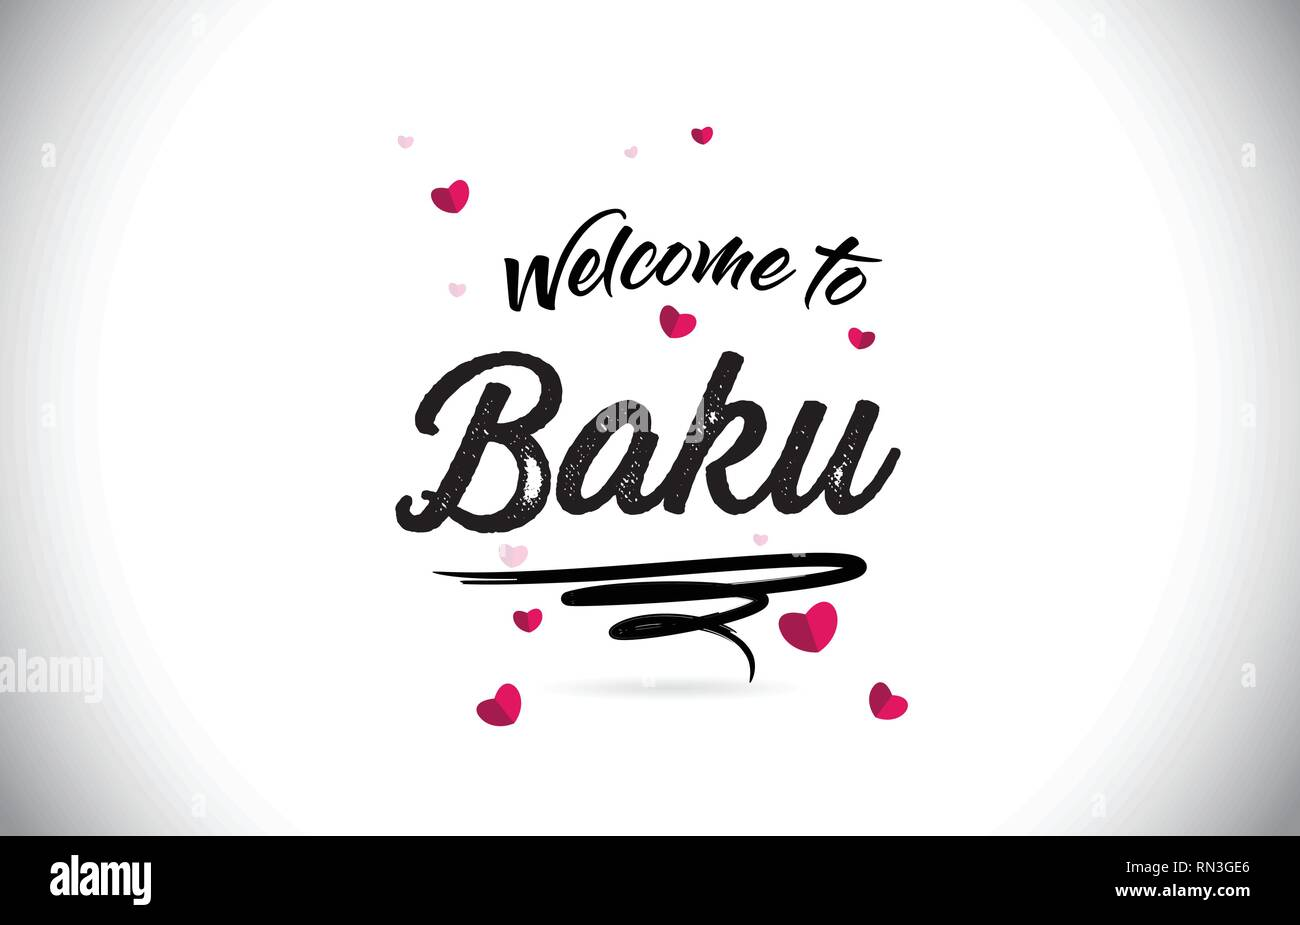 Baku Welcome To Word Text with Handwritten Font and Pink Heart Shape Design Vector Illustration. - Stock Vector